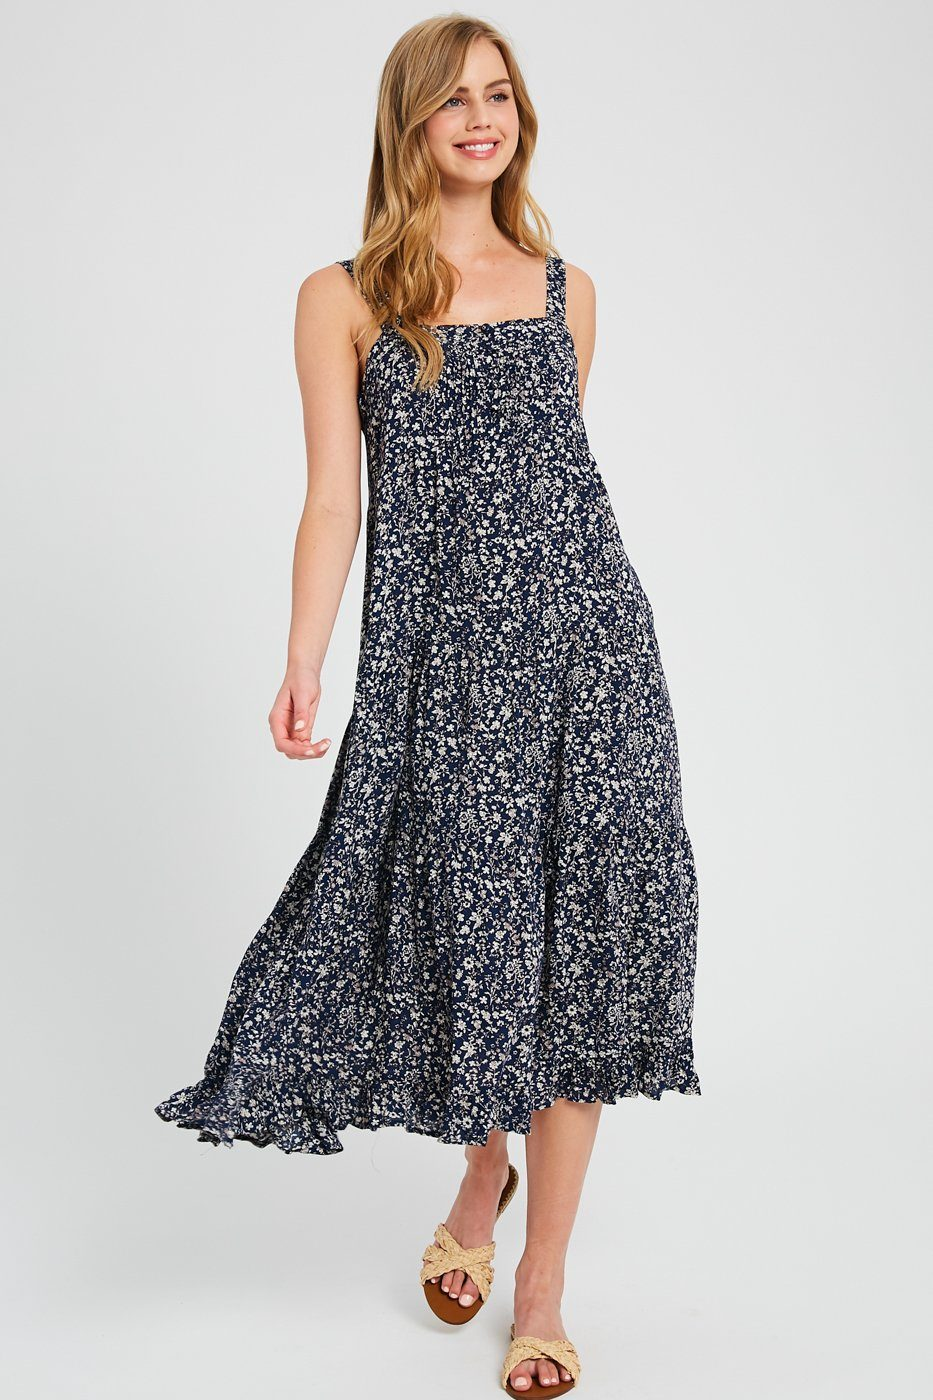 Shoot the Breeze Floral Dress